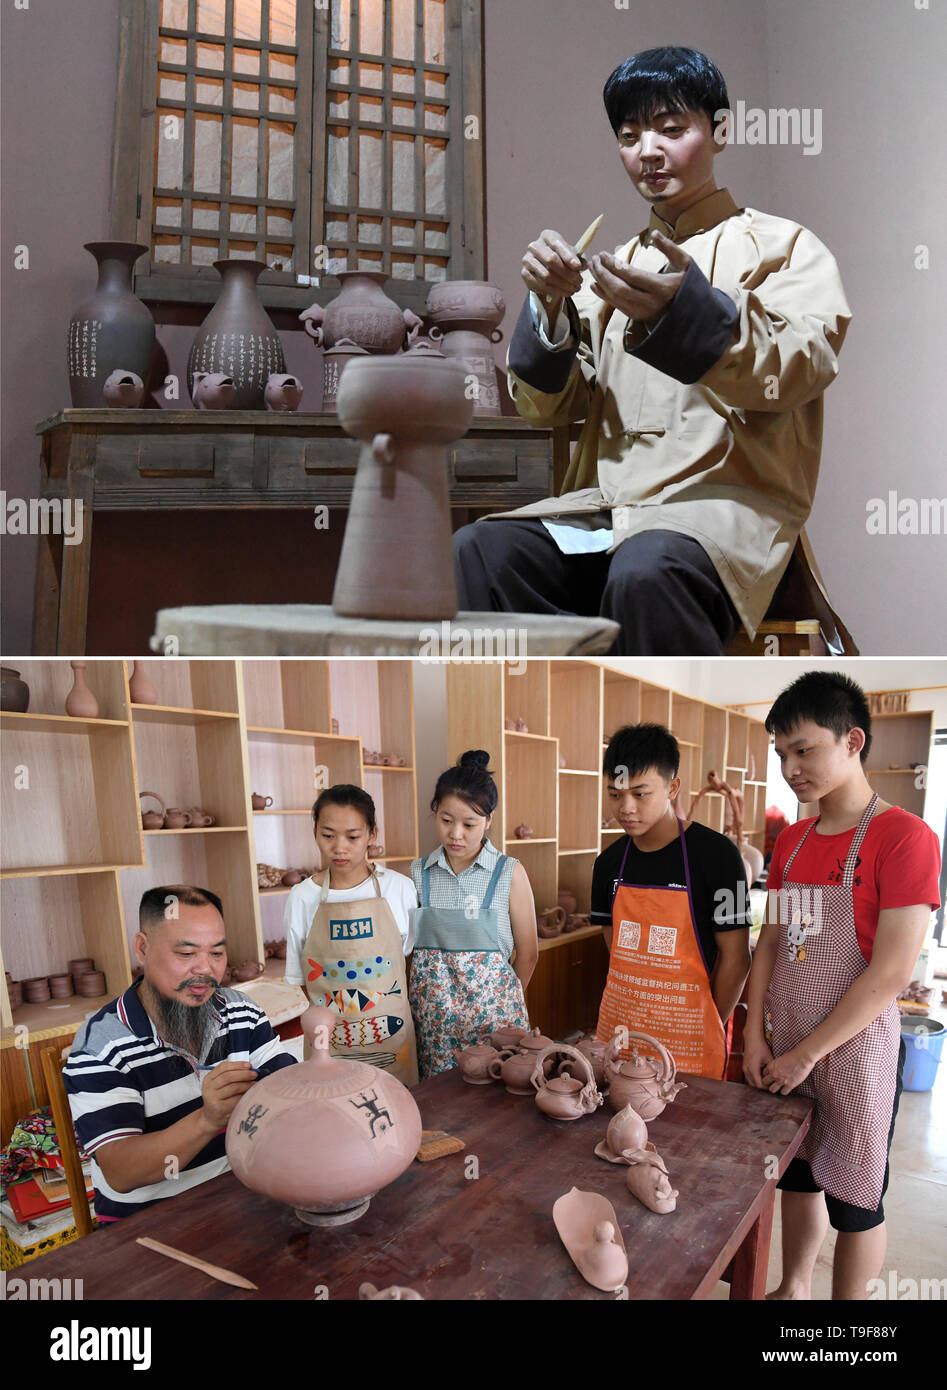 Nanning, China's Guangxi Zhuang Autonomous Region. 9th Oct, 2018. Combo photo shows a scene of a potter making Nixing pottery ware at Anthropology Museum of Guangxi in Nanning, south China's Guangxi Zhuang Autonomous Region, May 18, 2019 (above), and potter Huang Haiji (1st L) working on a Nixing pottery ware at a studio in Qinzhou, south China's Guangxi Zhuang Autonomous Region, Oct. 9, 2018. Credit: Lu Boan/Xinhua/Alamy Live News - Stock Image